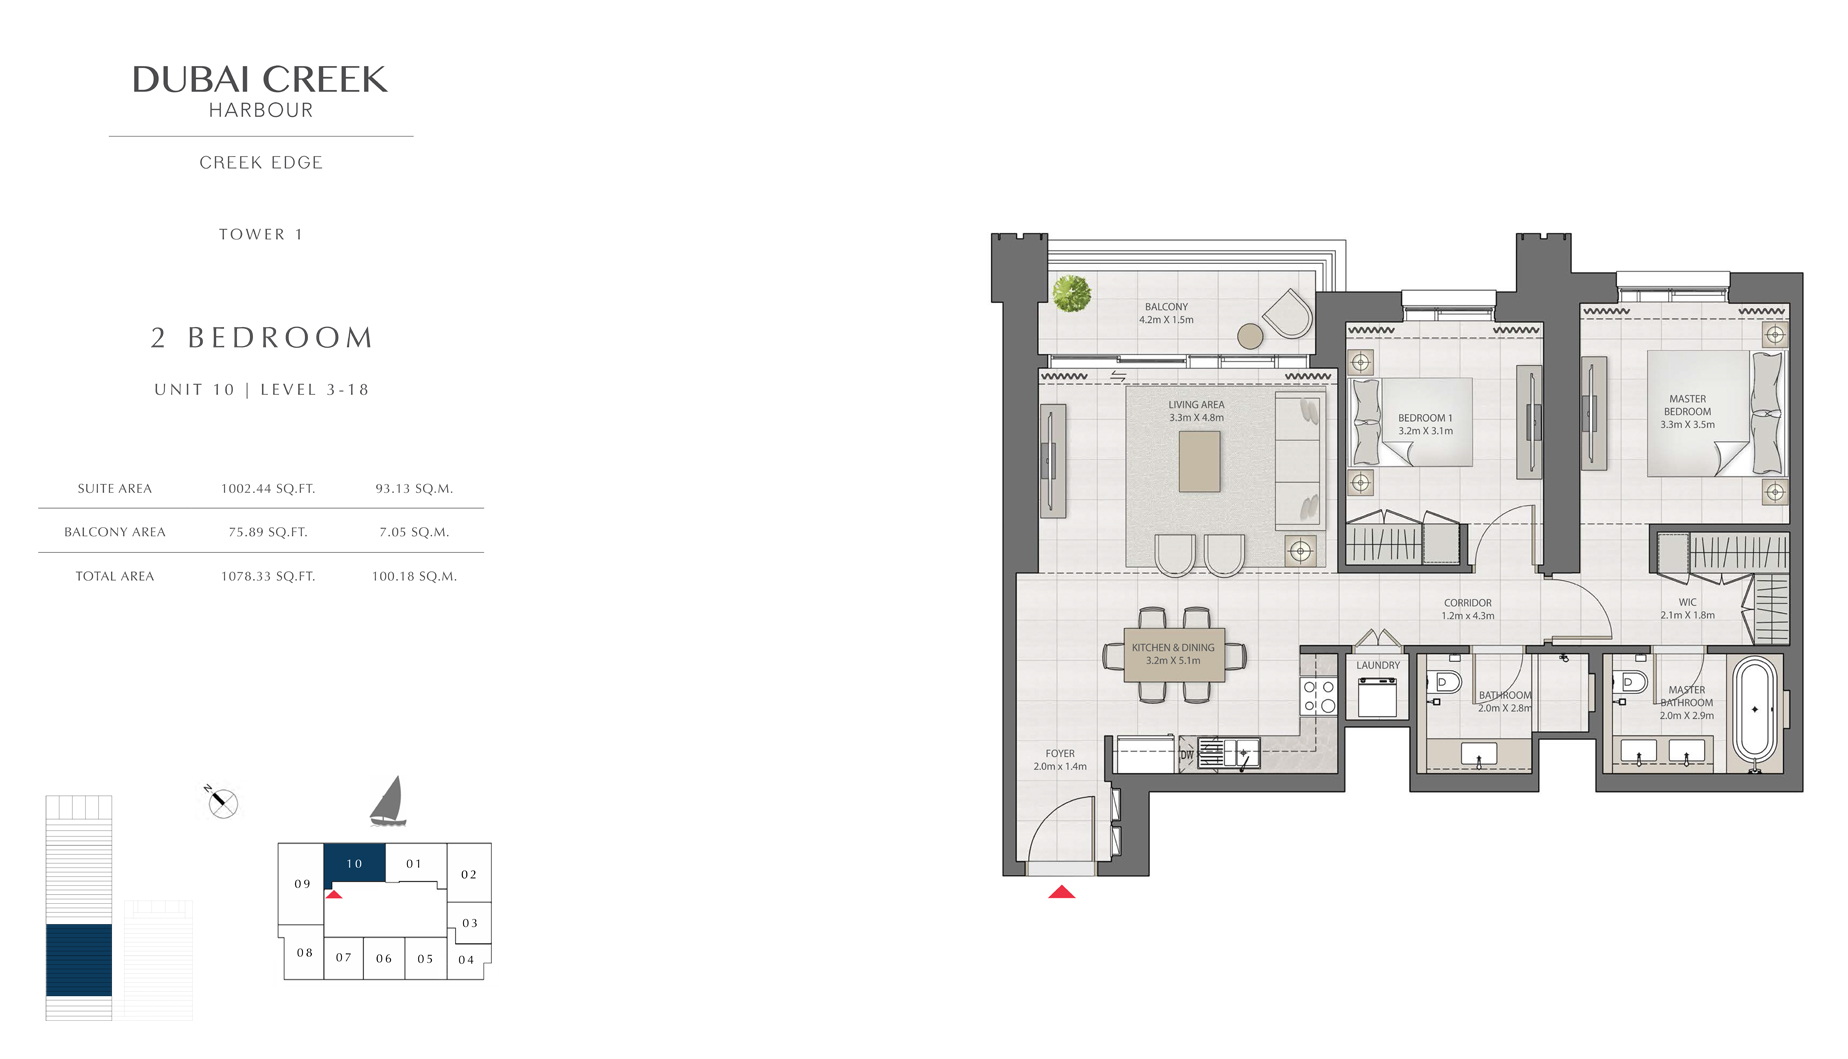 2 Bedroom Tower 1 Unit 10 Level 3-18  Size 1078 sq.ft